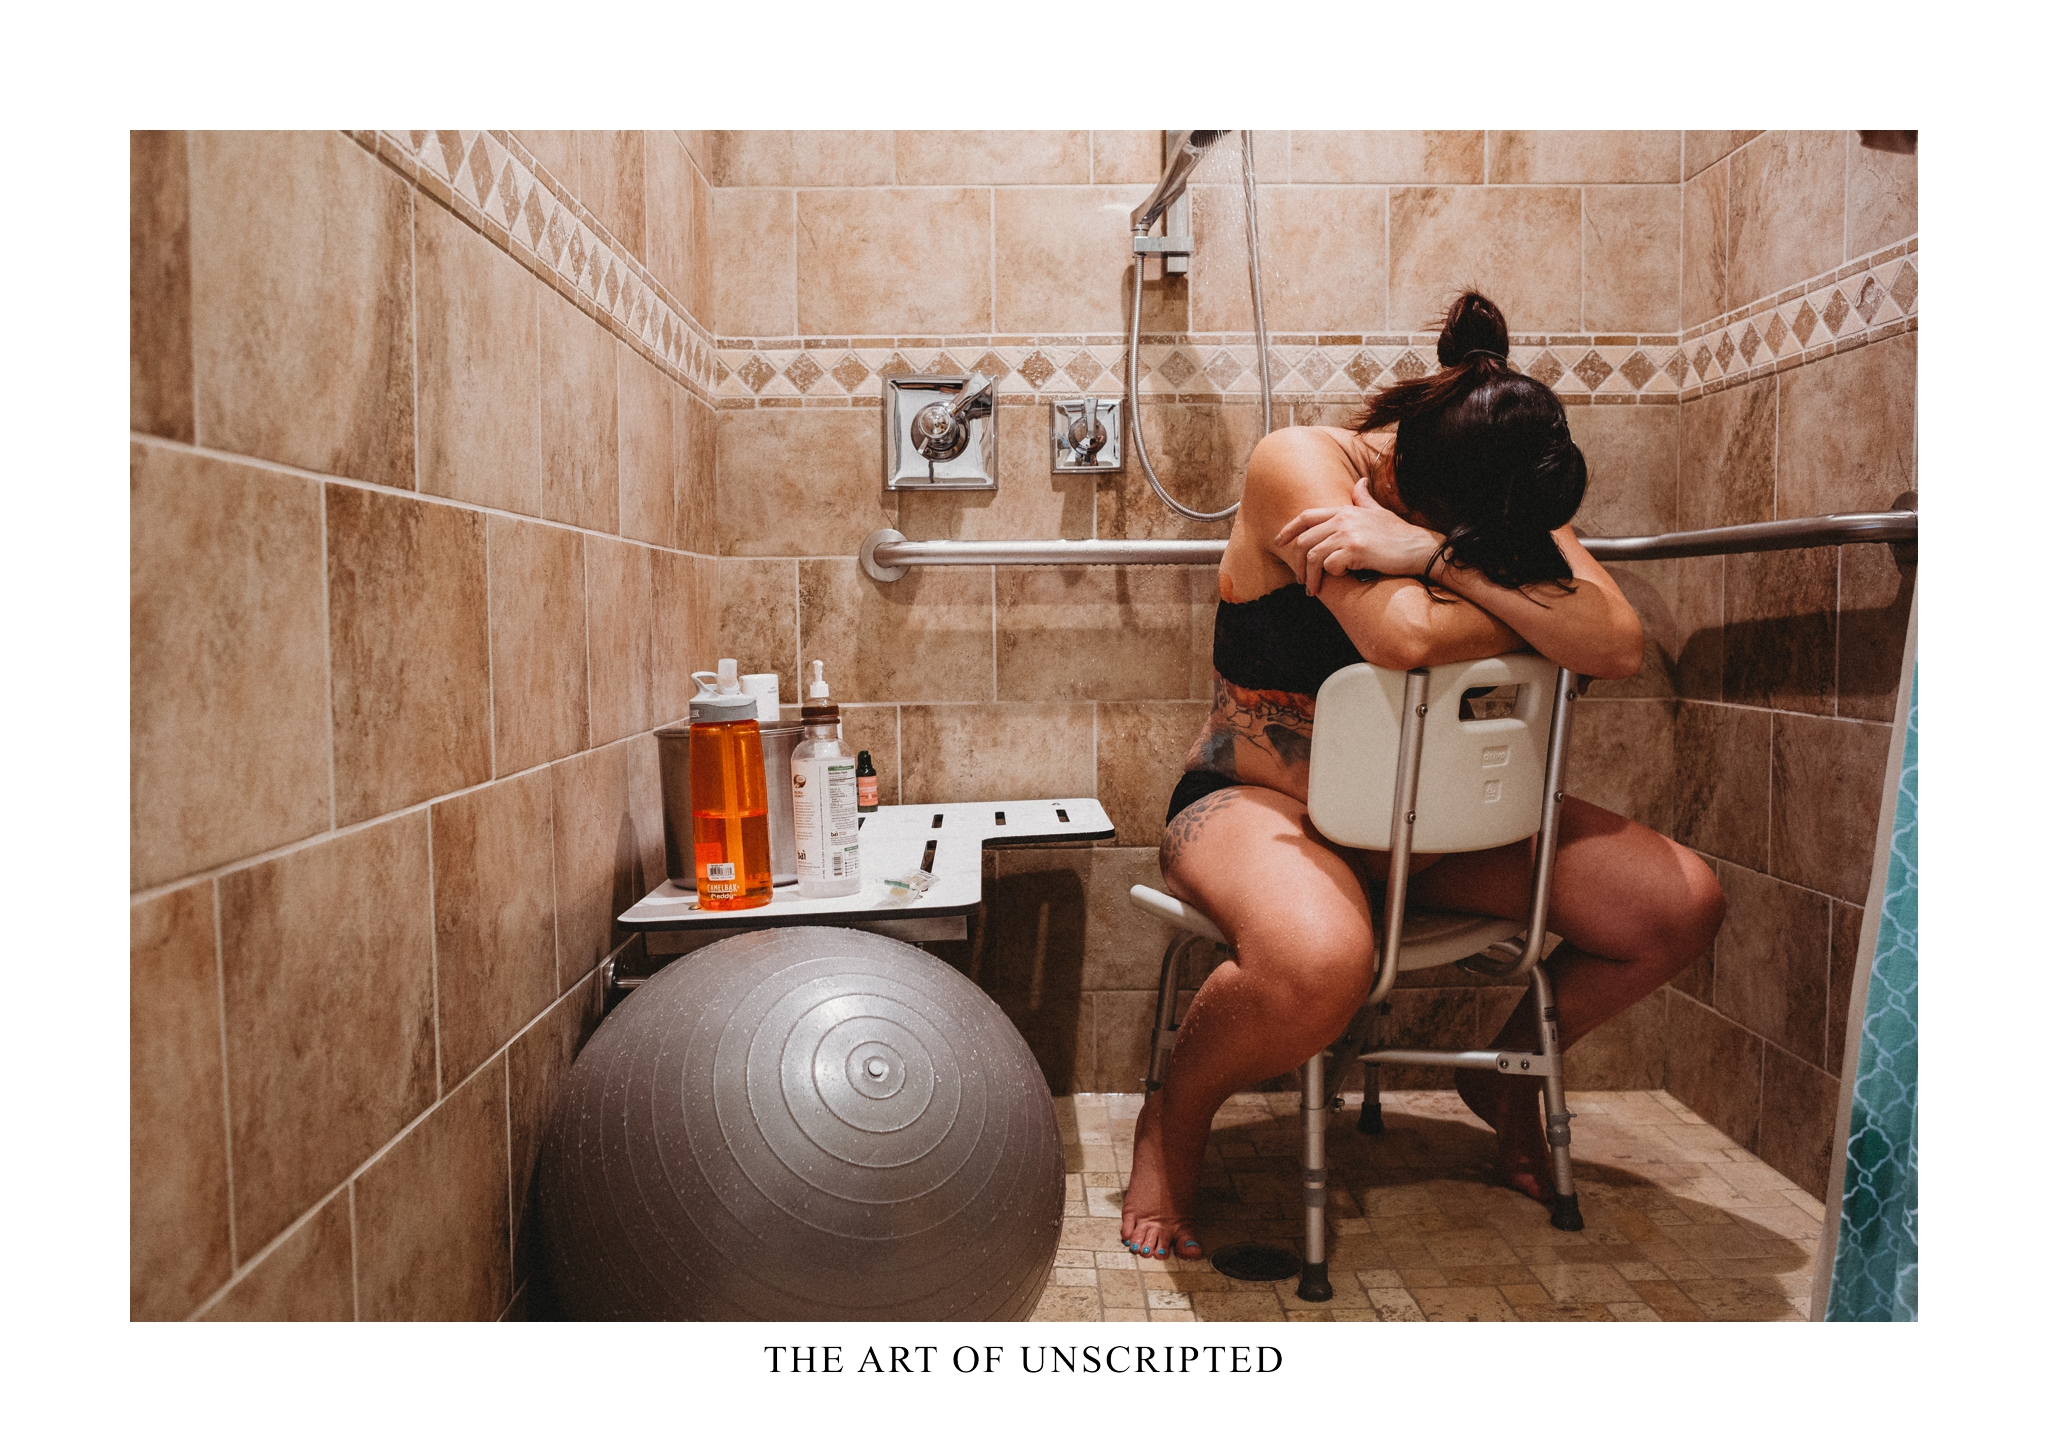 2017-06-10_092537__THE ART OF UNSCRIPTED_SPRINGFIELD MO_BIRTH PHOTOGRAPHER_ DOCUMENTARY_STORYTELLING_417_PHOTOGRAPHER